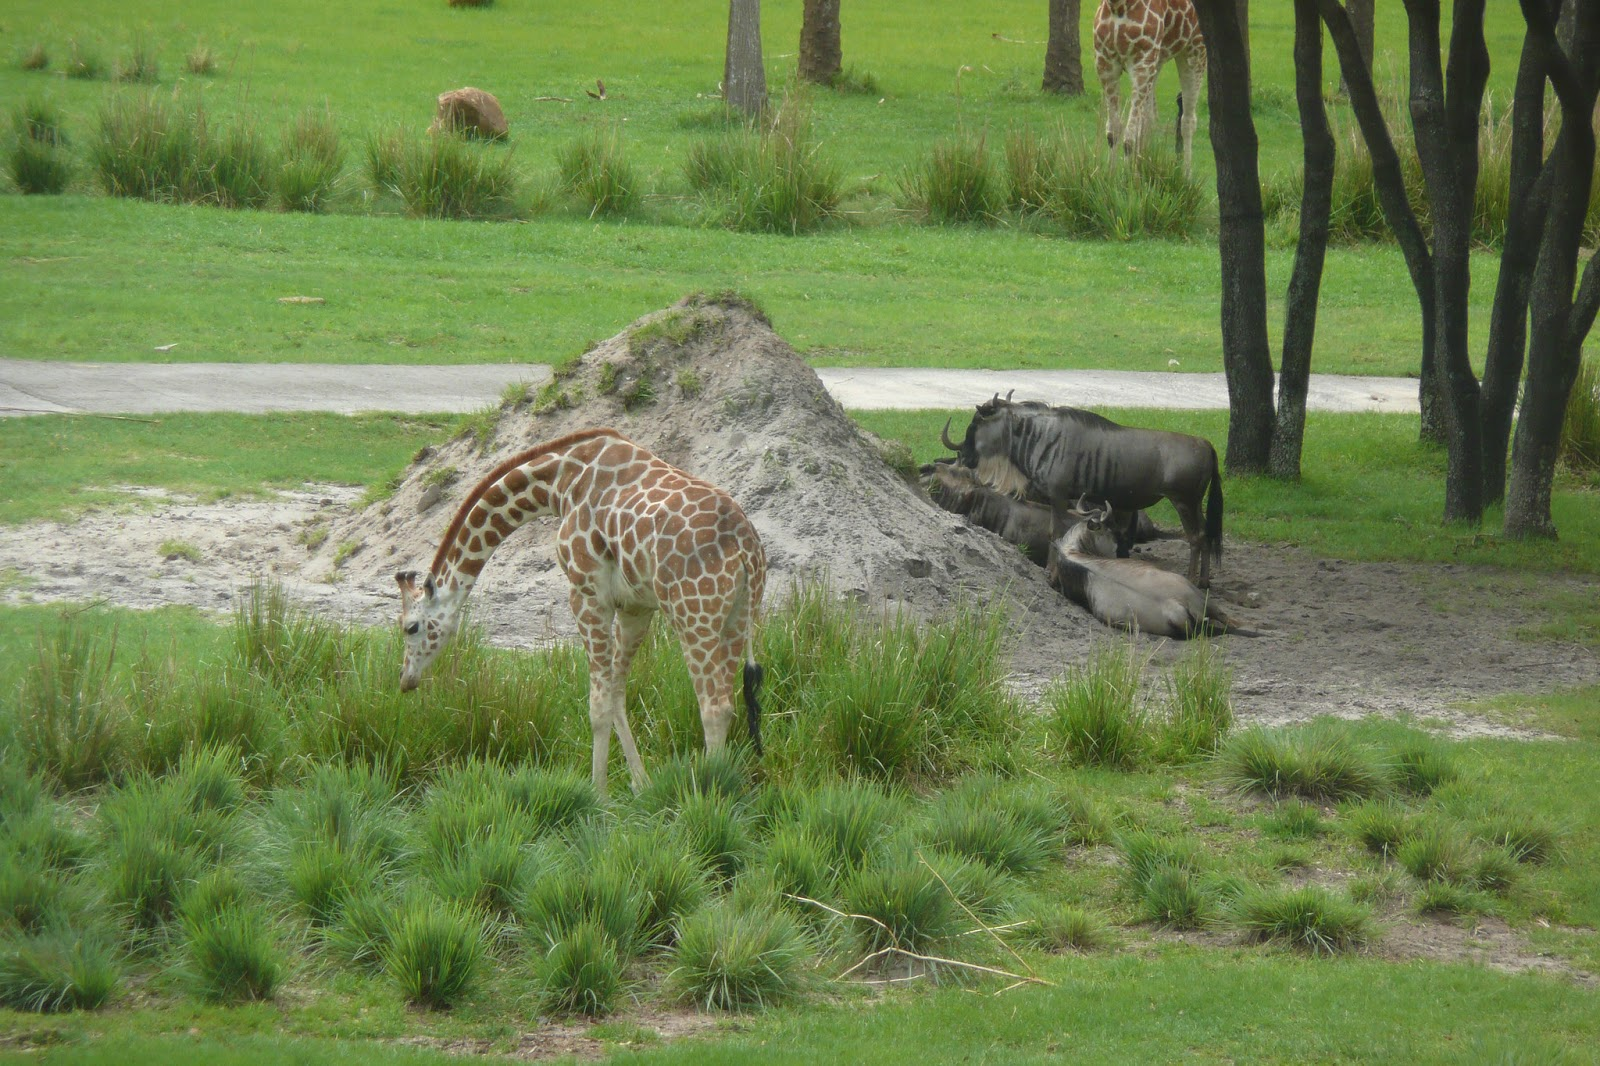 View from our window: Giraffe, Wildebeasts